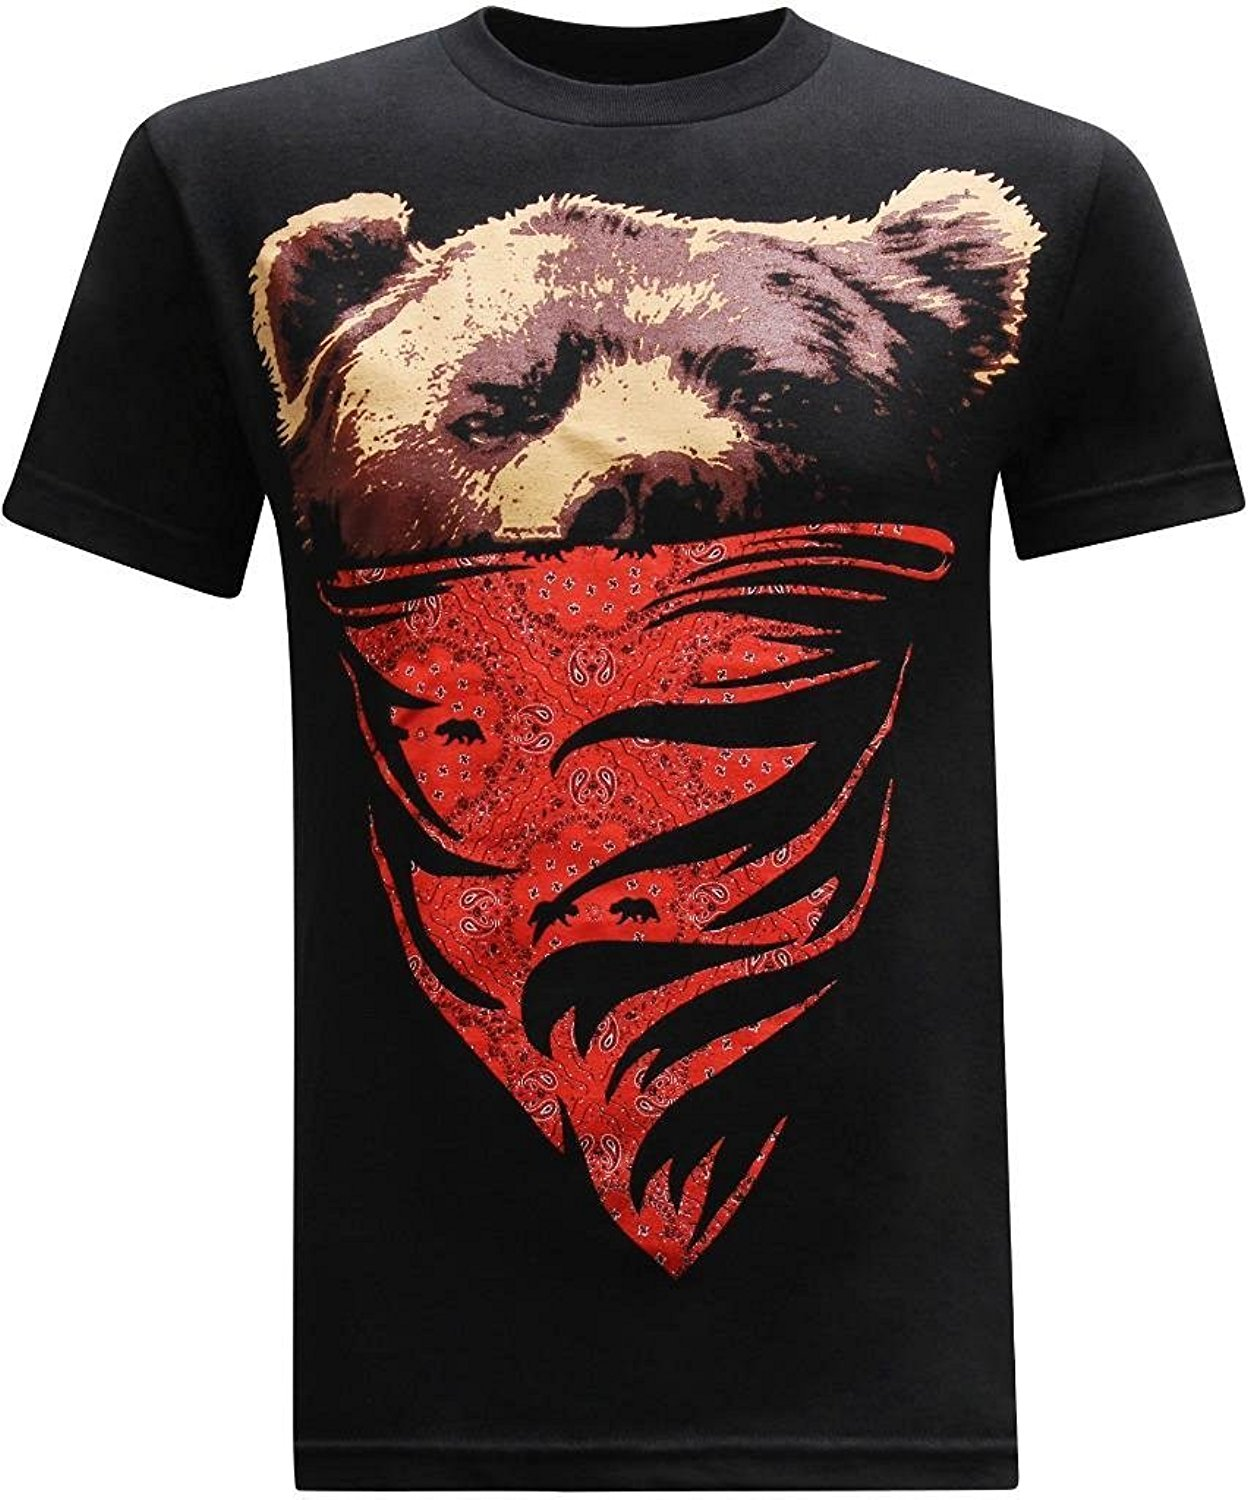 California Republic Red Bandana Bear Men's T-Shirt 2017 New Pure Cotton Short Sleeves Hip Hop Fashion Mens T Shirt Top Tee